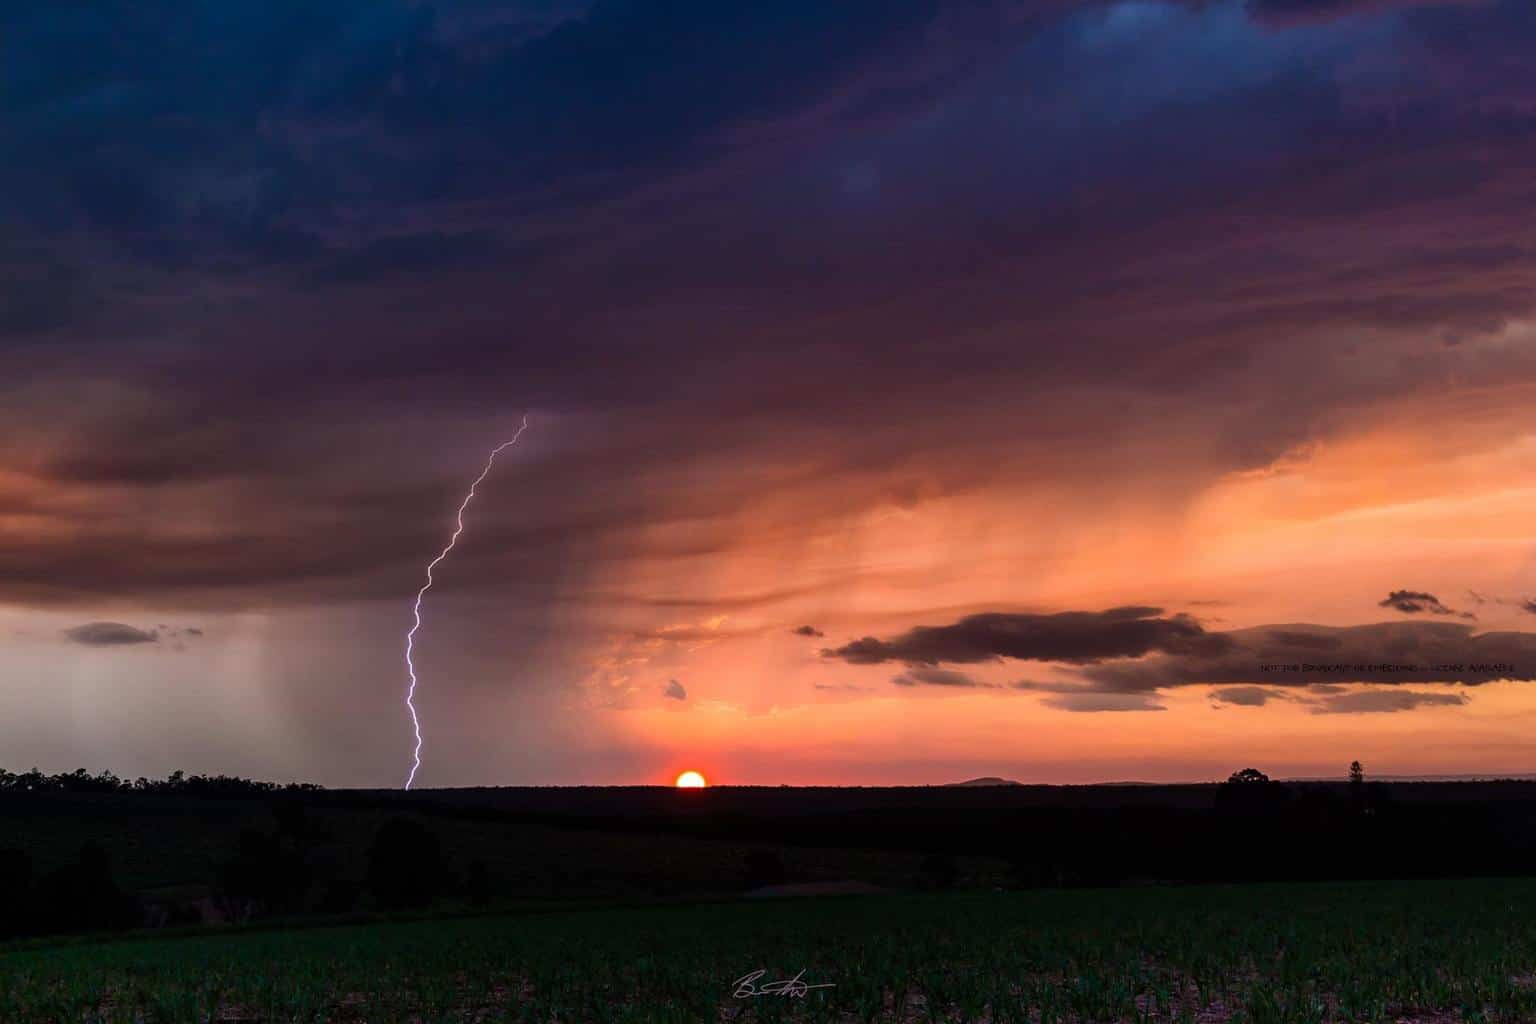 Isis Central Mill (a sugar mill near Childers), southern Queensland, Australia. The main storm had died for the day about an hour prior to sunset but my lucky stars wanted to throw me just a small sunset storm December 2016.... HECK YES!!! Went home very happy with a handful of great shots.